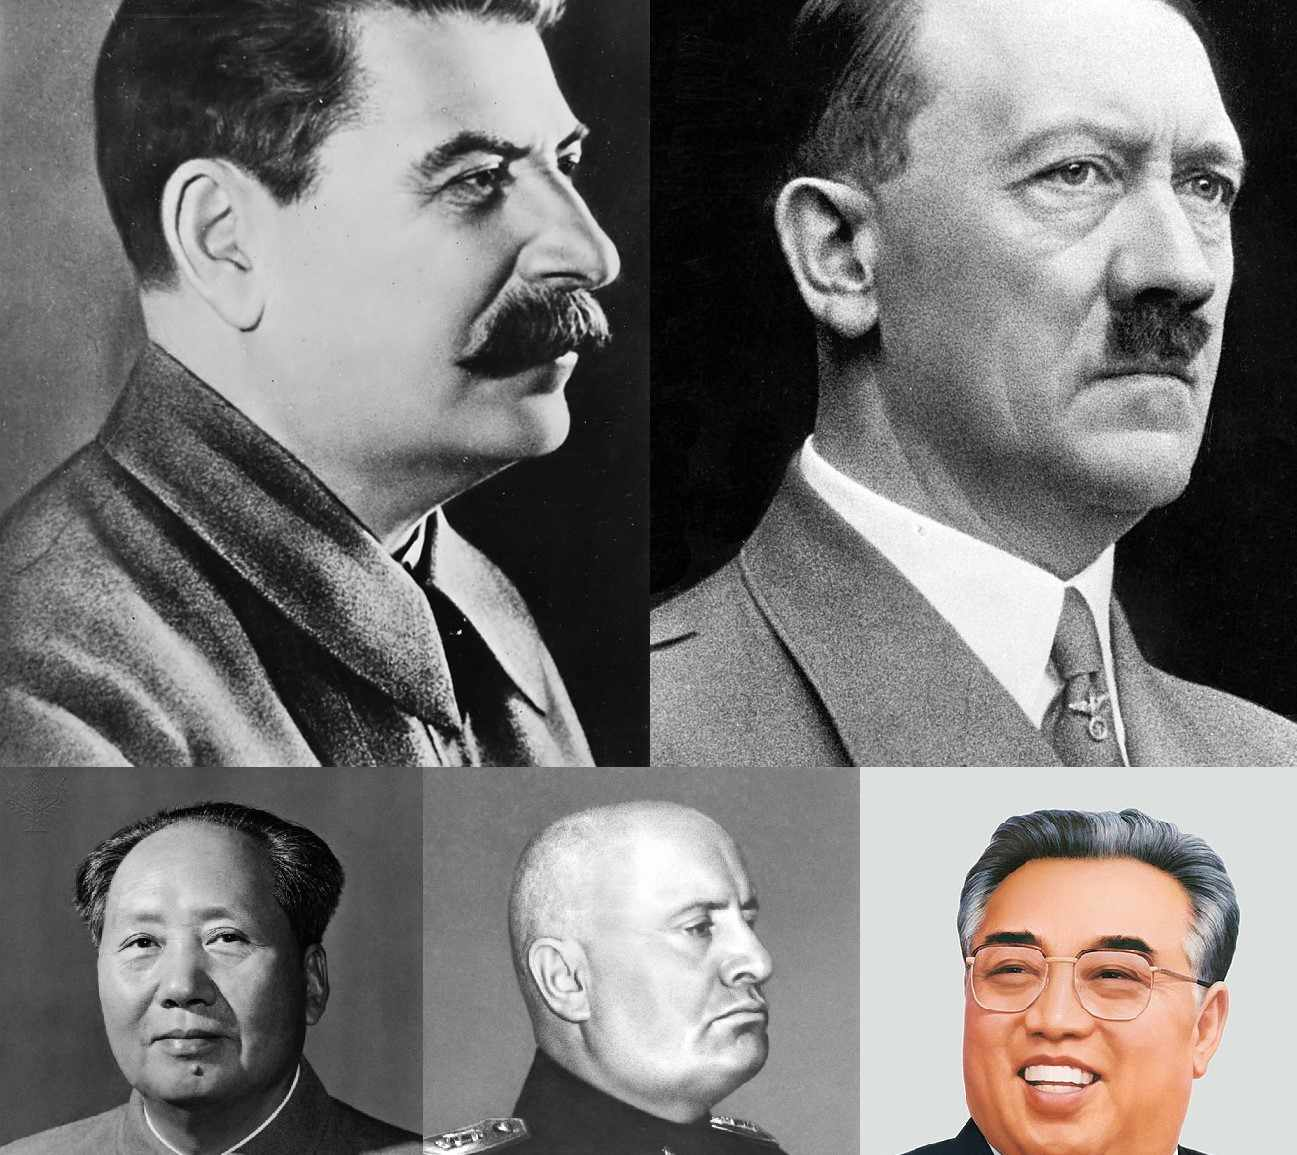 Collage of totalitarian leaders (each row - left to right) Joseph Stalin, Adolf Hitler, Mao Zedong, Benito Mussolini, and Kim Il-sung.